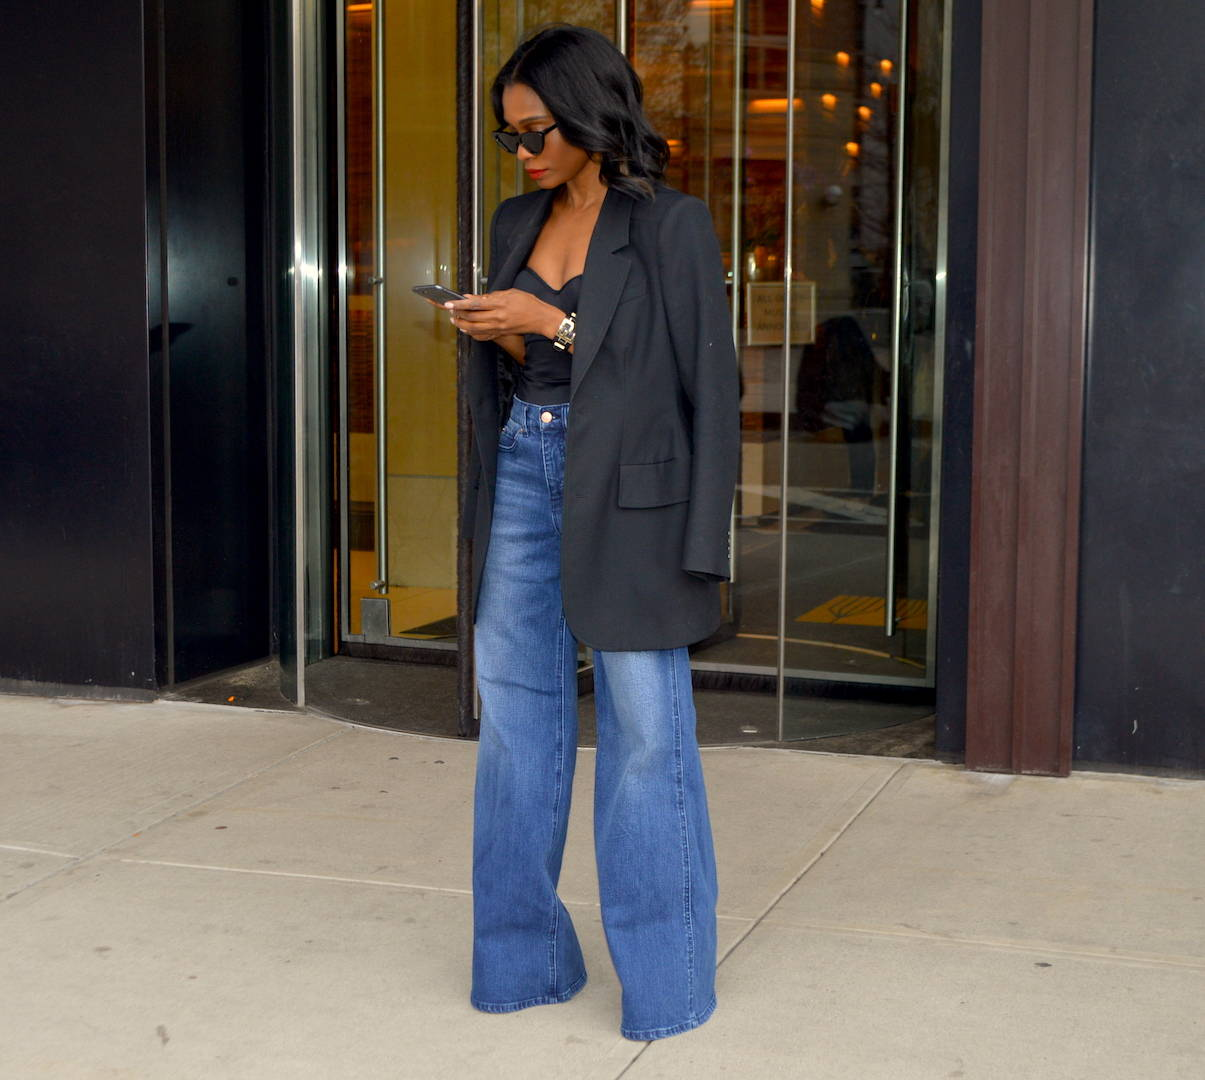 Wide leg jeans with oversized blazer